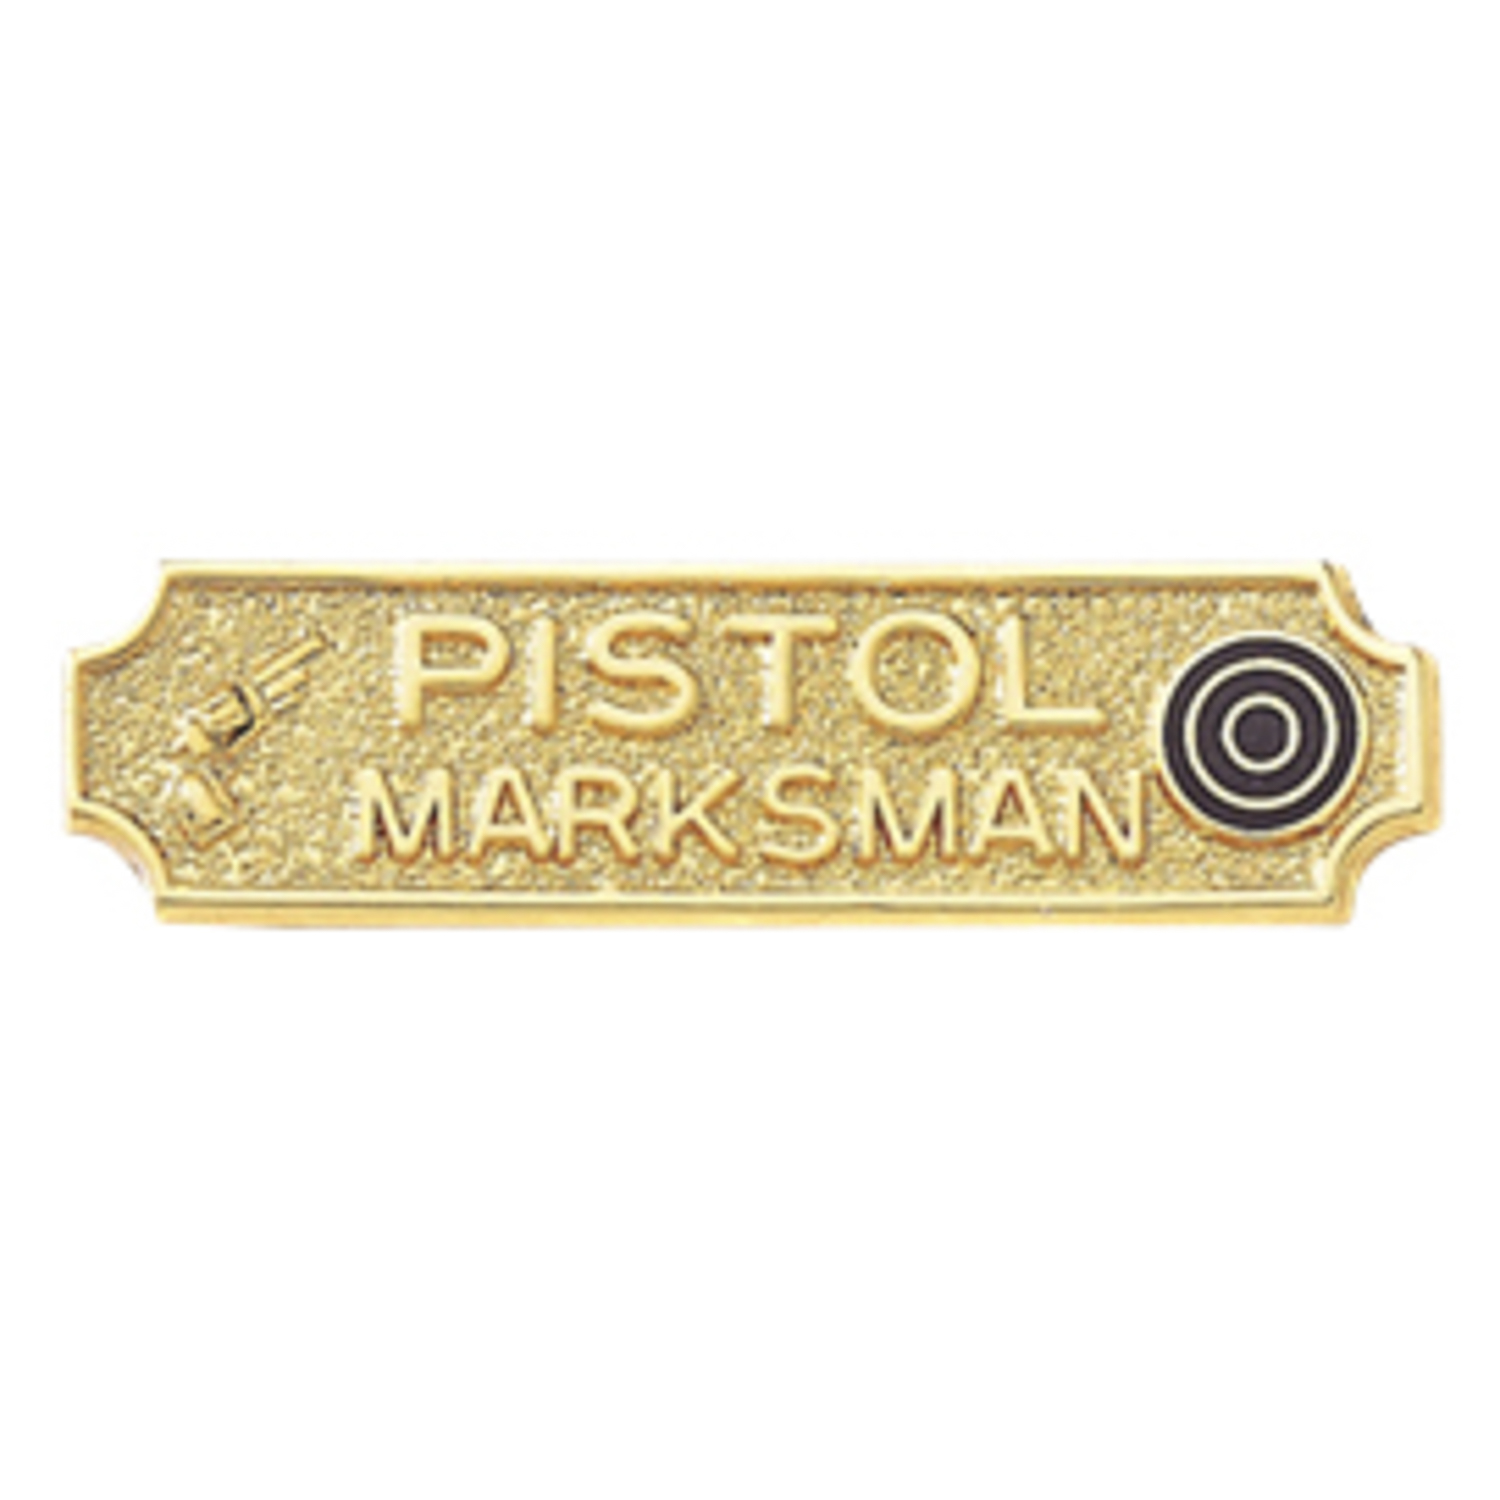 Blackinton Pistol Marksmanship Bar